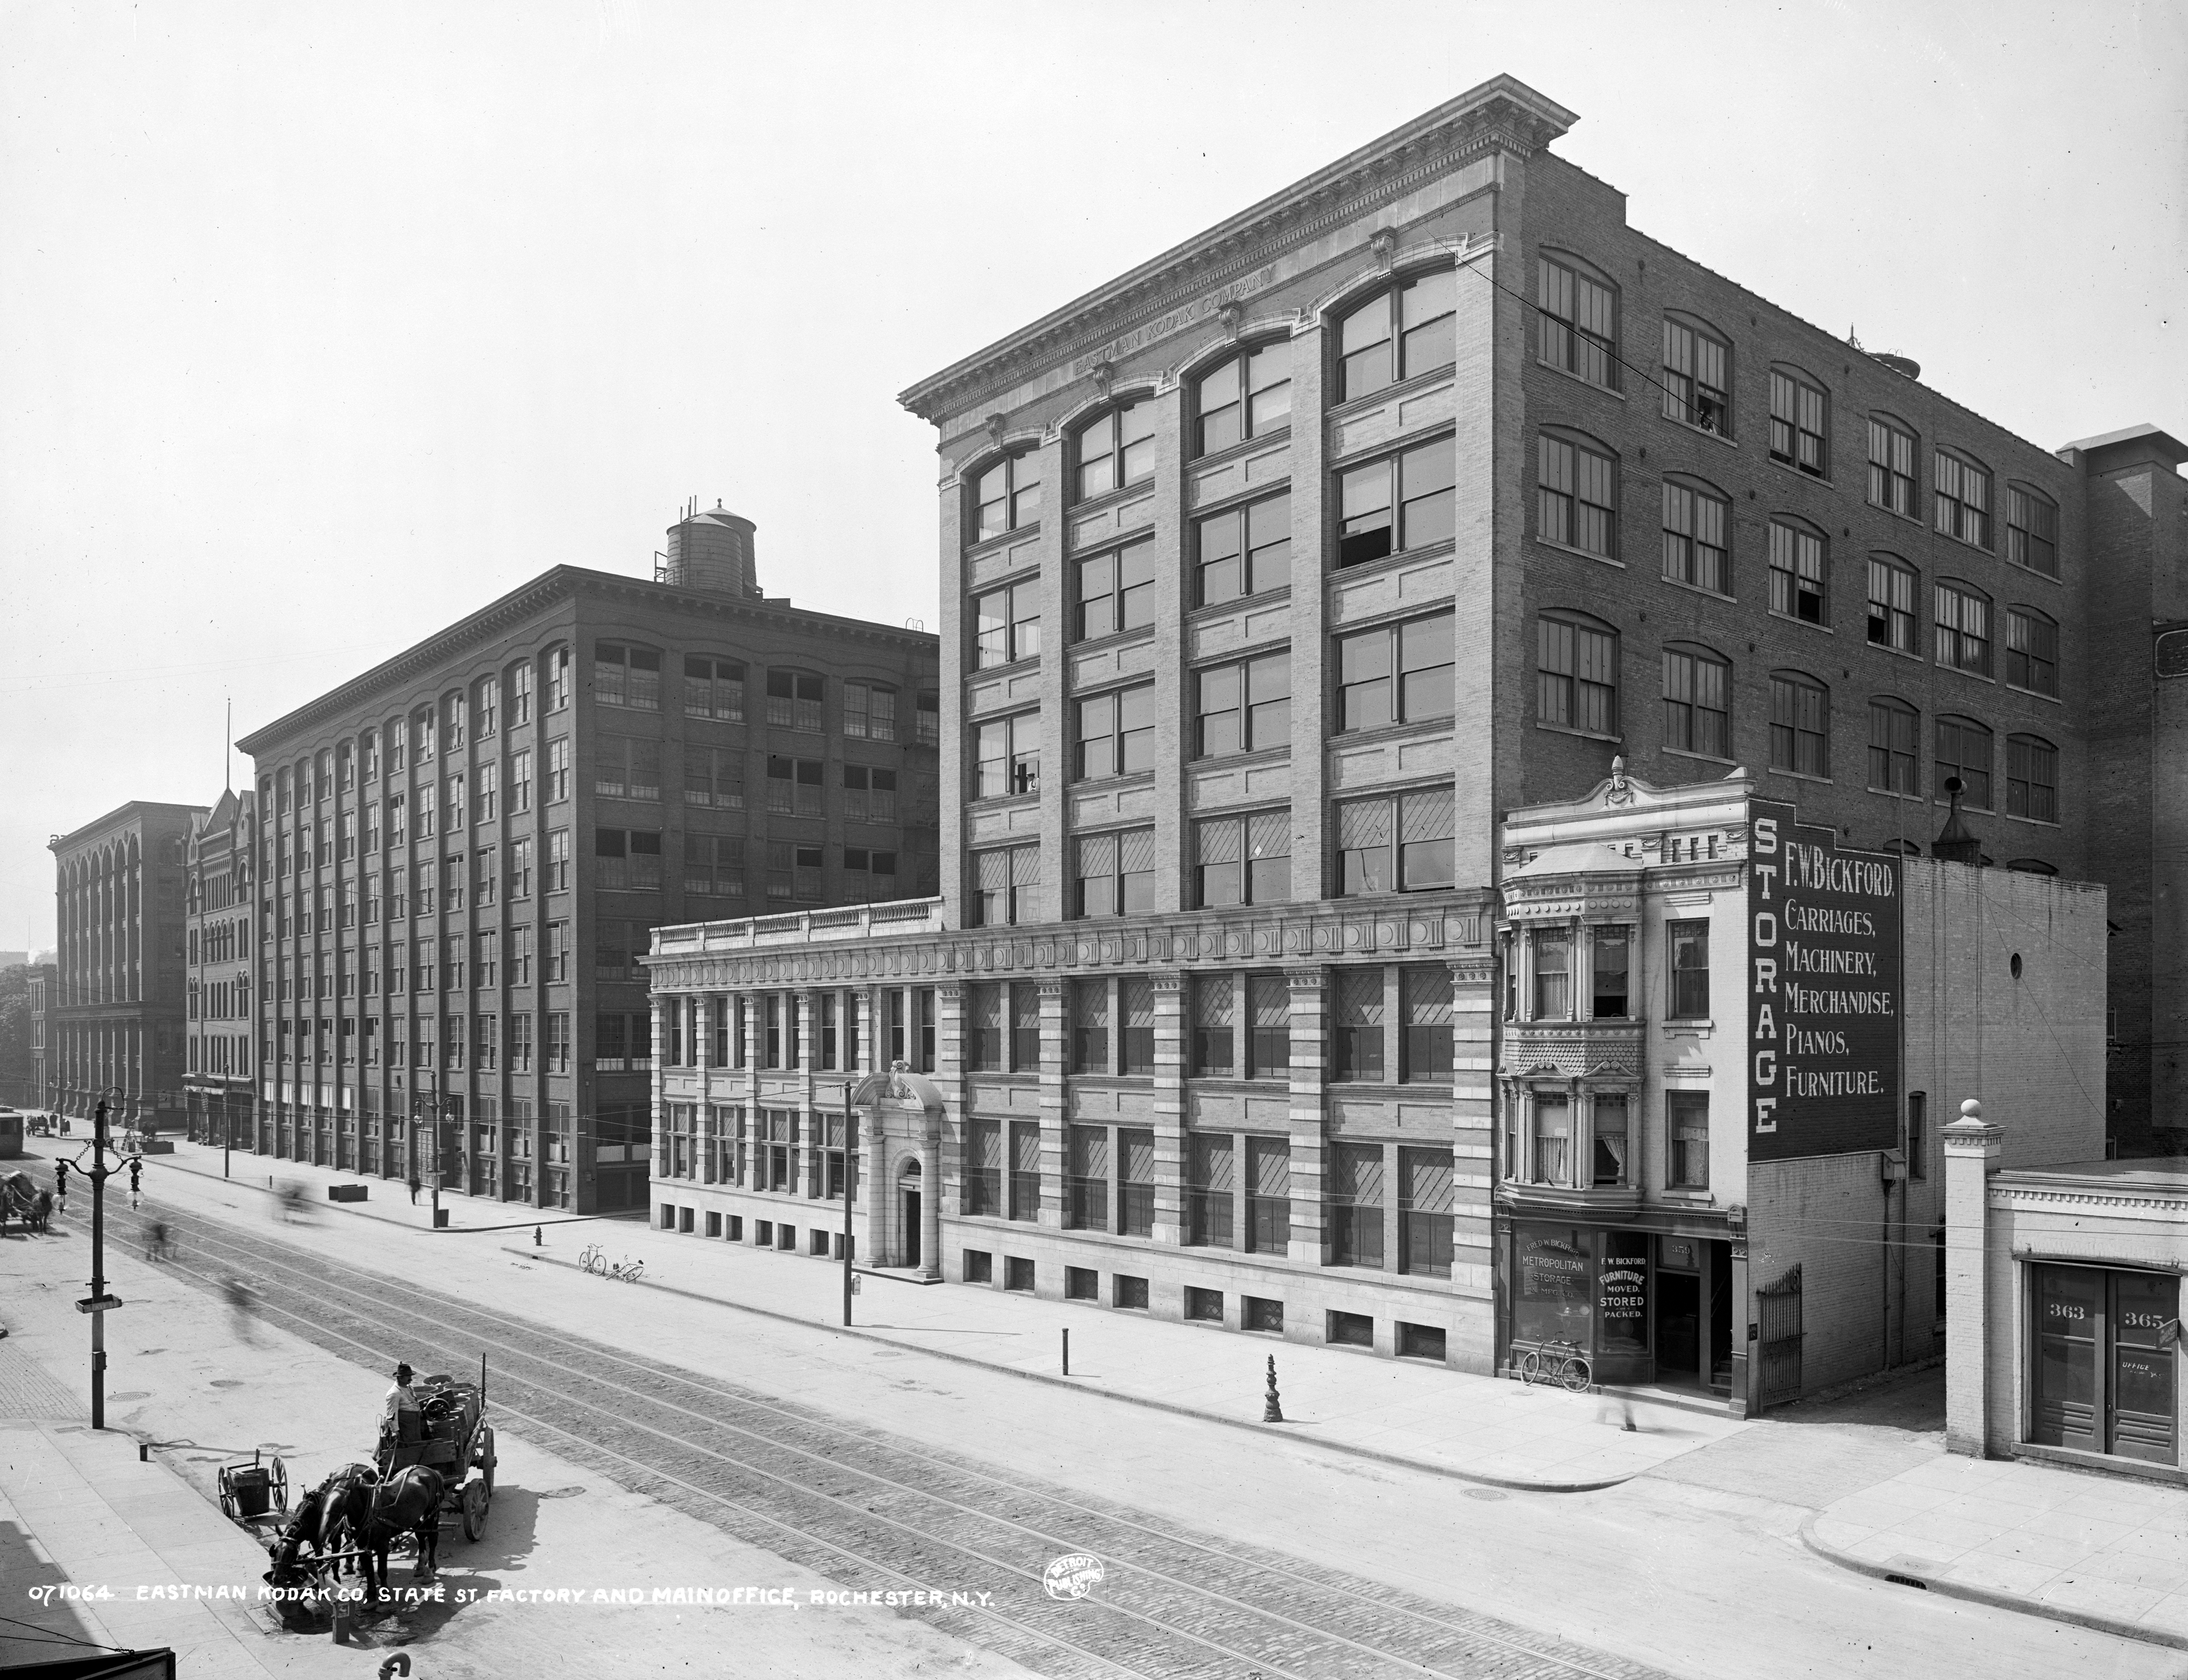 company kodak essay Background information kodak company was founded in 1880 by george eastman eastman invented and patented a dry-plate formula and a.